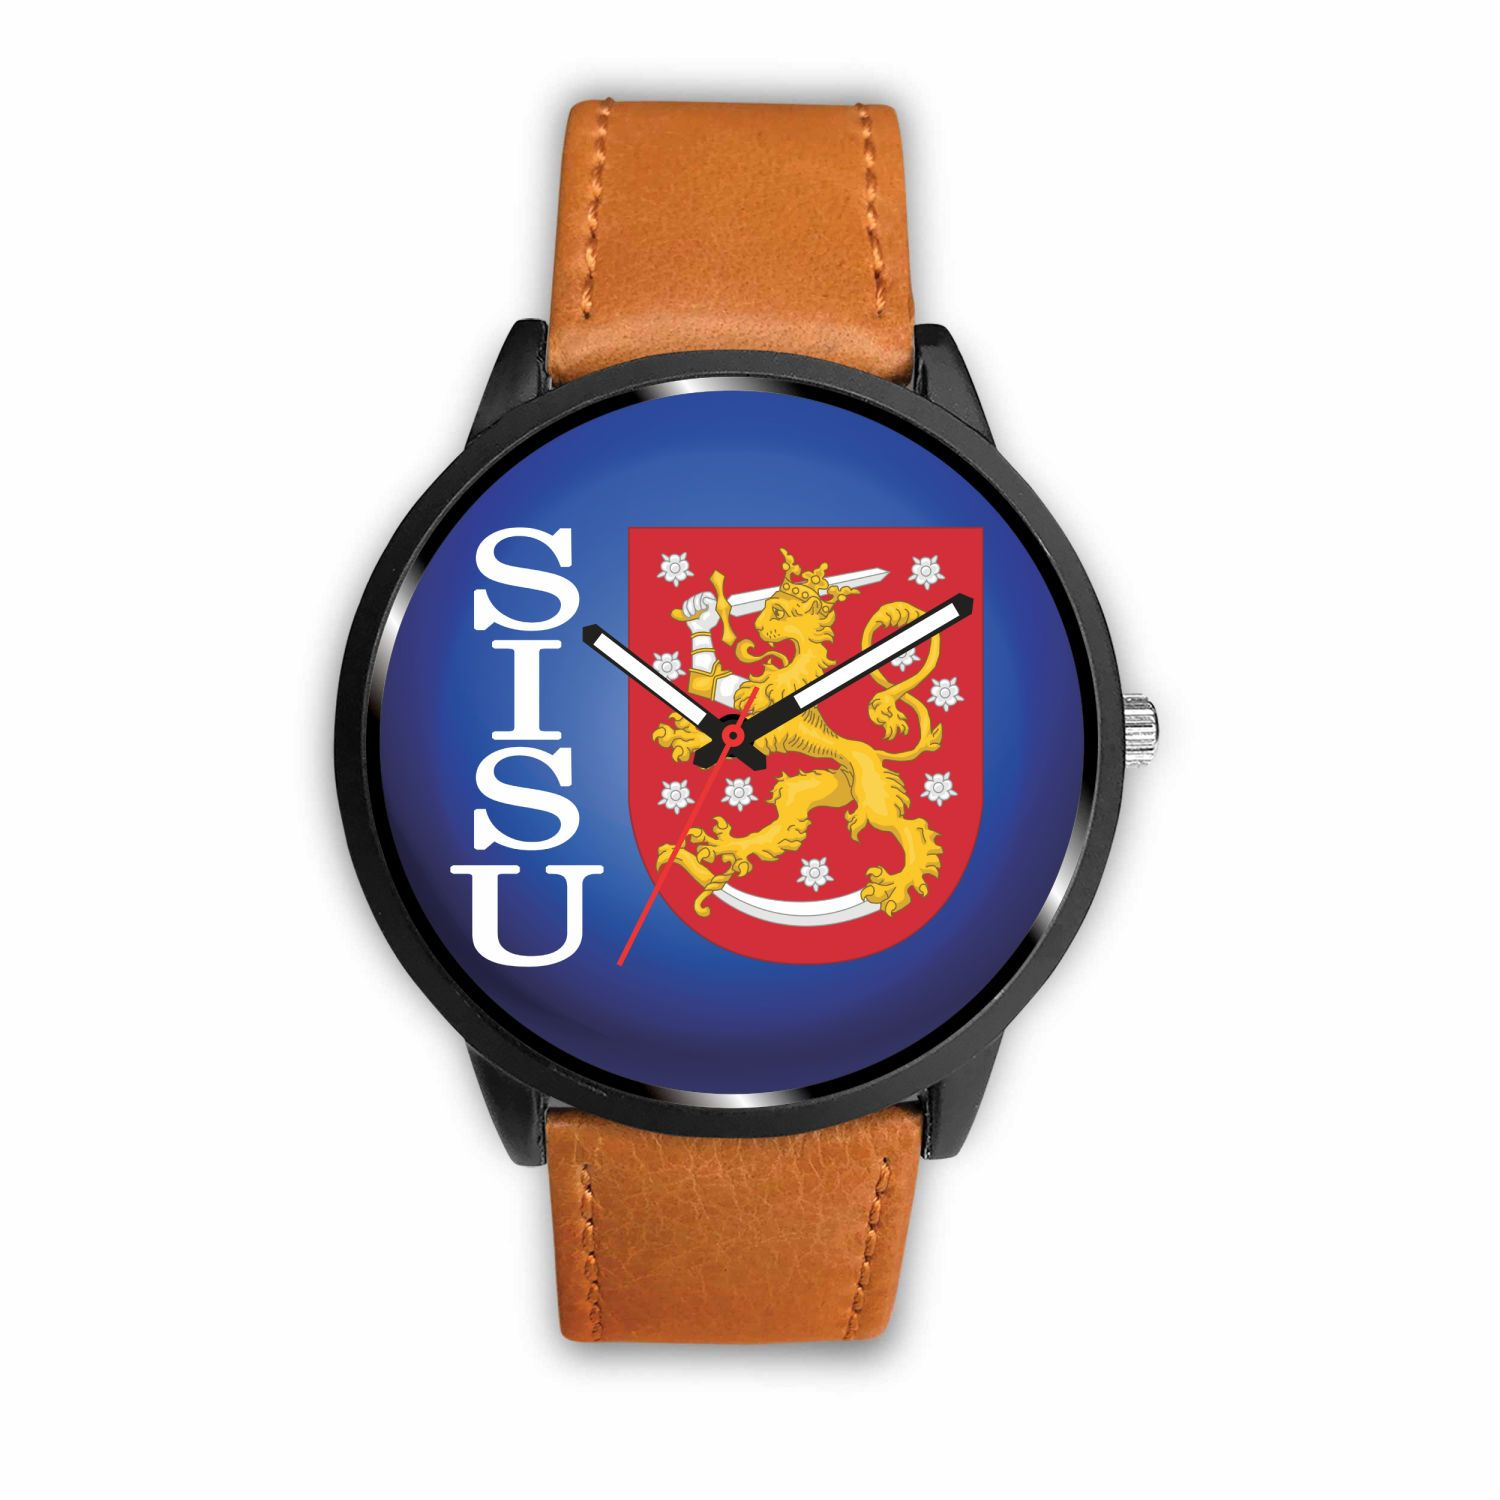 Awesome SISU Finnish Watch - Free Shipping